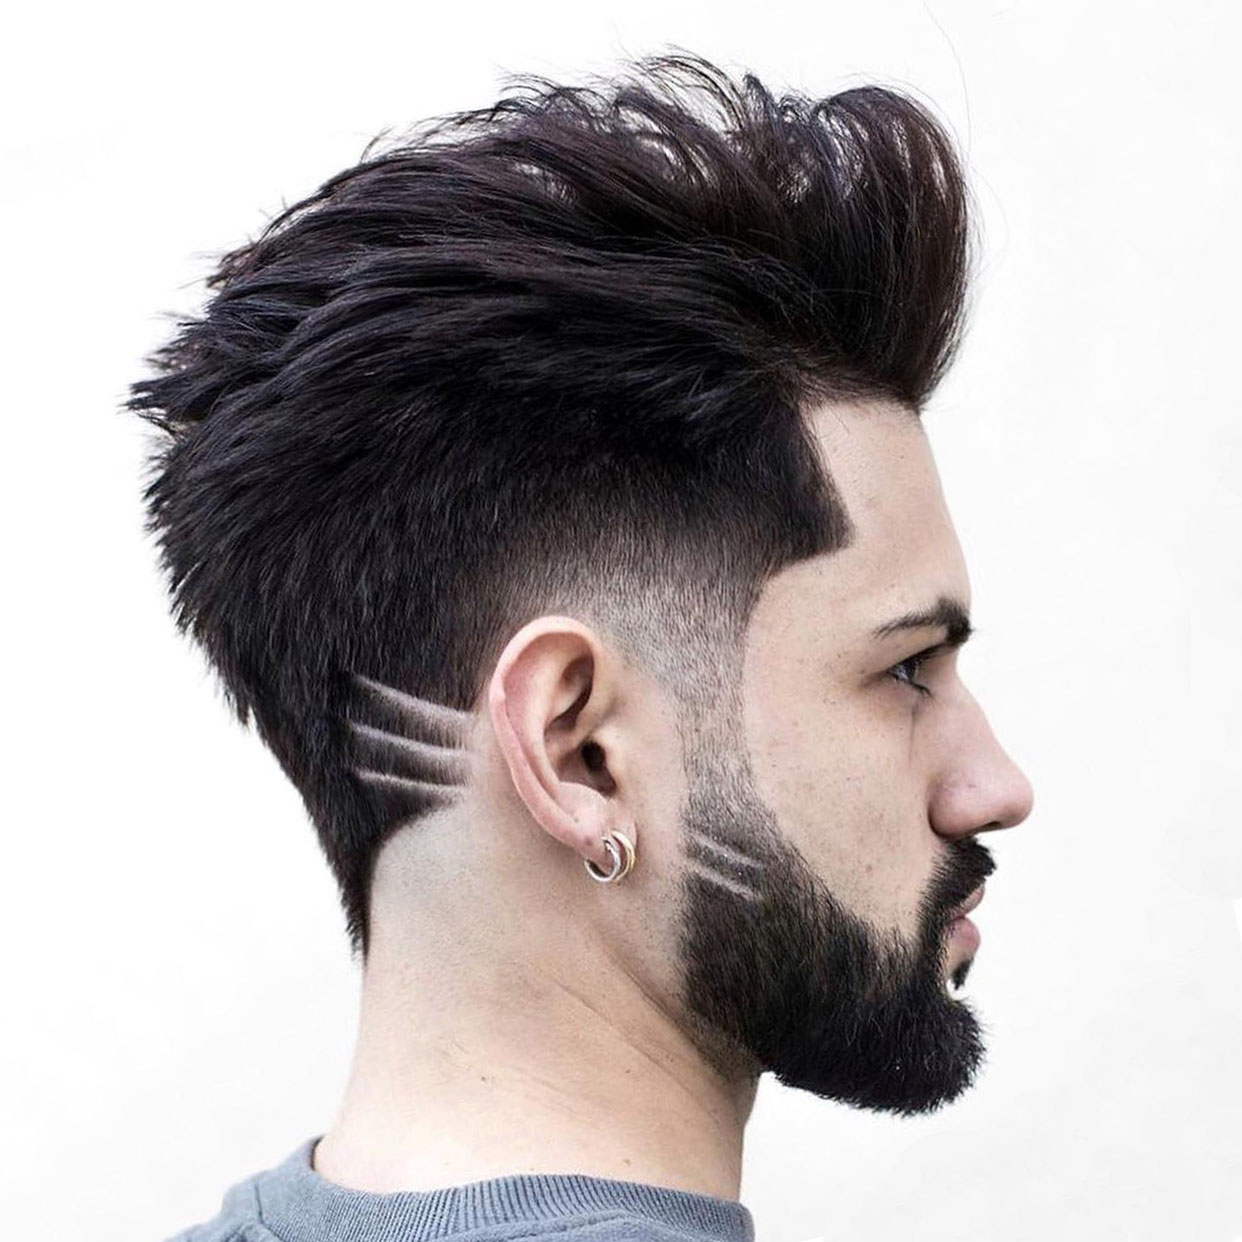 Brushed Back Hairstyle with Full Beard